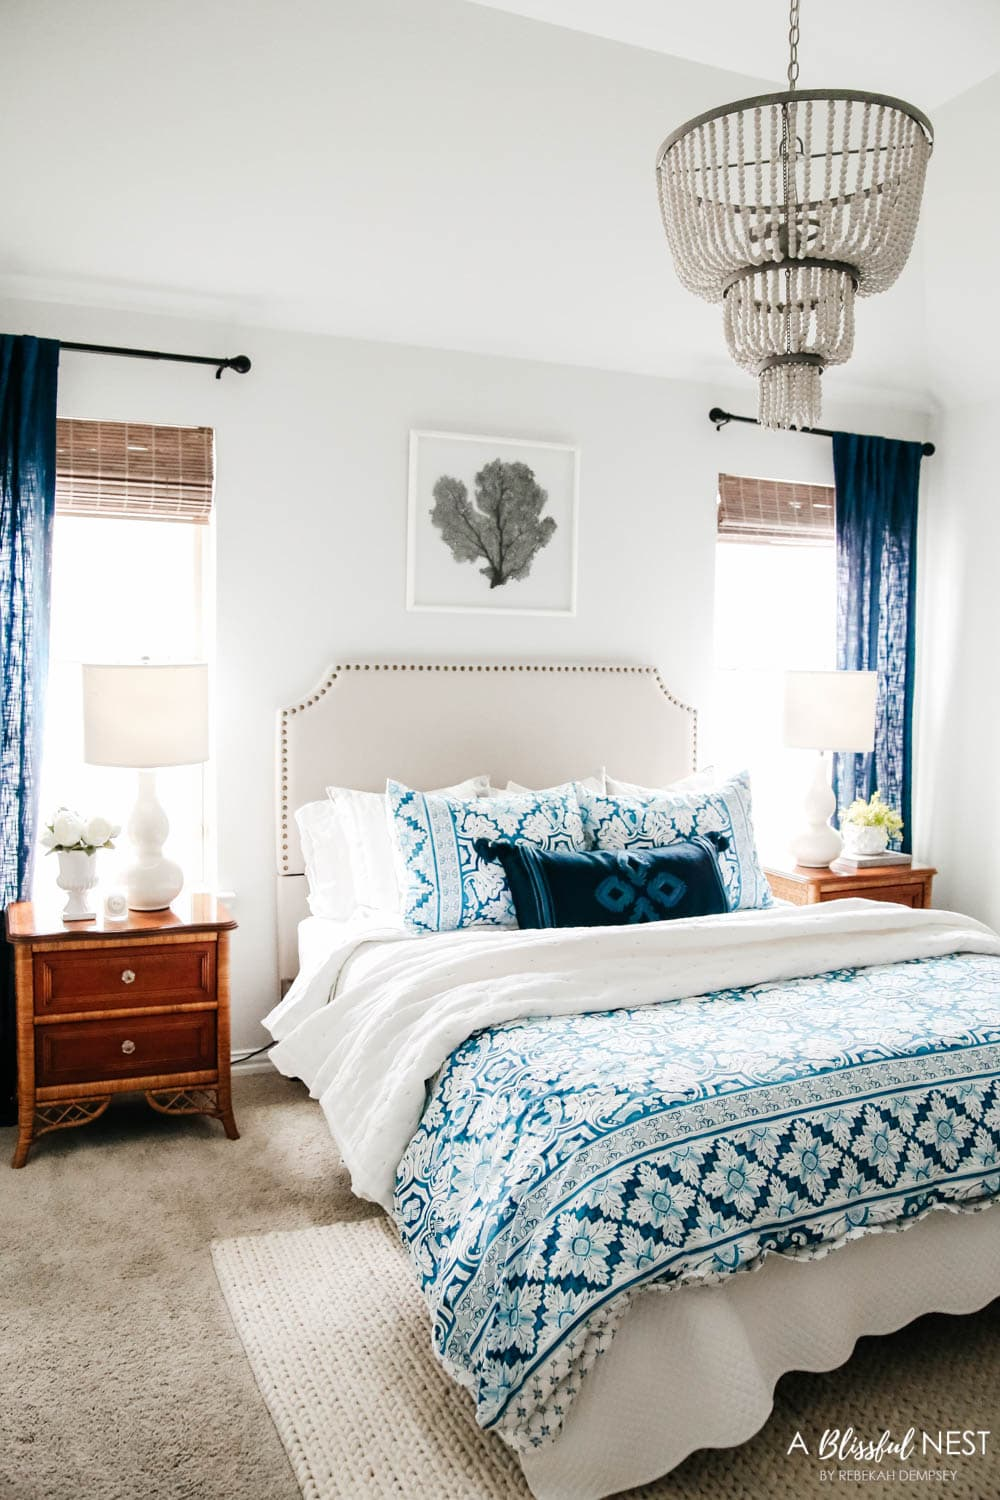 Guest bedroom decor ideas featuring decor from Black Rock Galleries a online consignment sale website. #ABlissfulNest #ad #bedroomdecor #bedroomideas